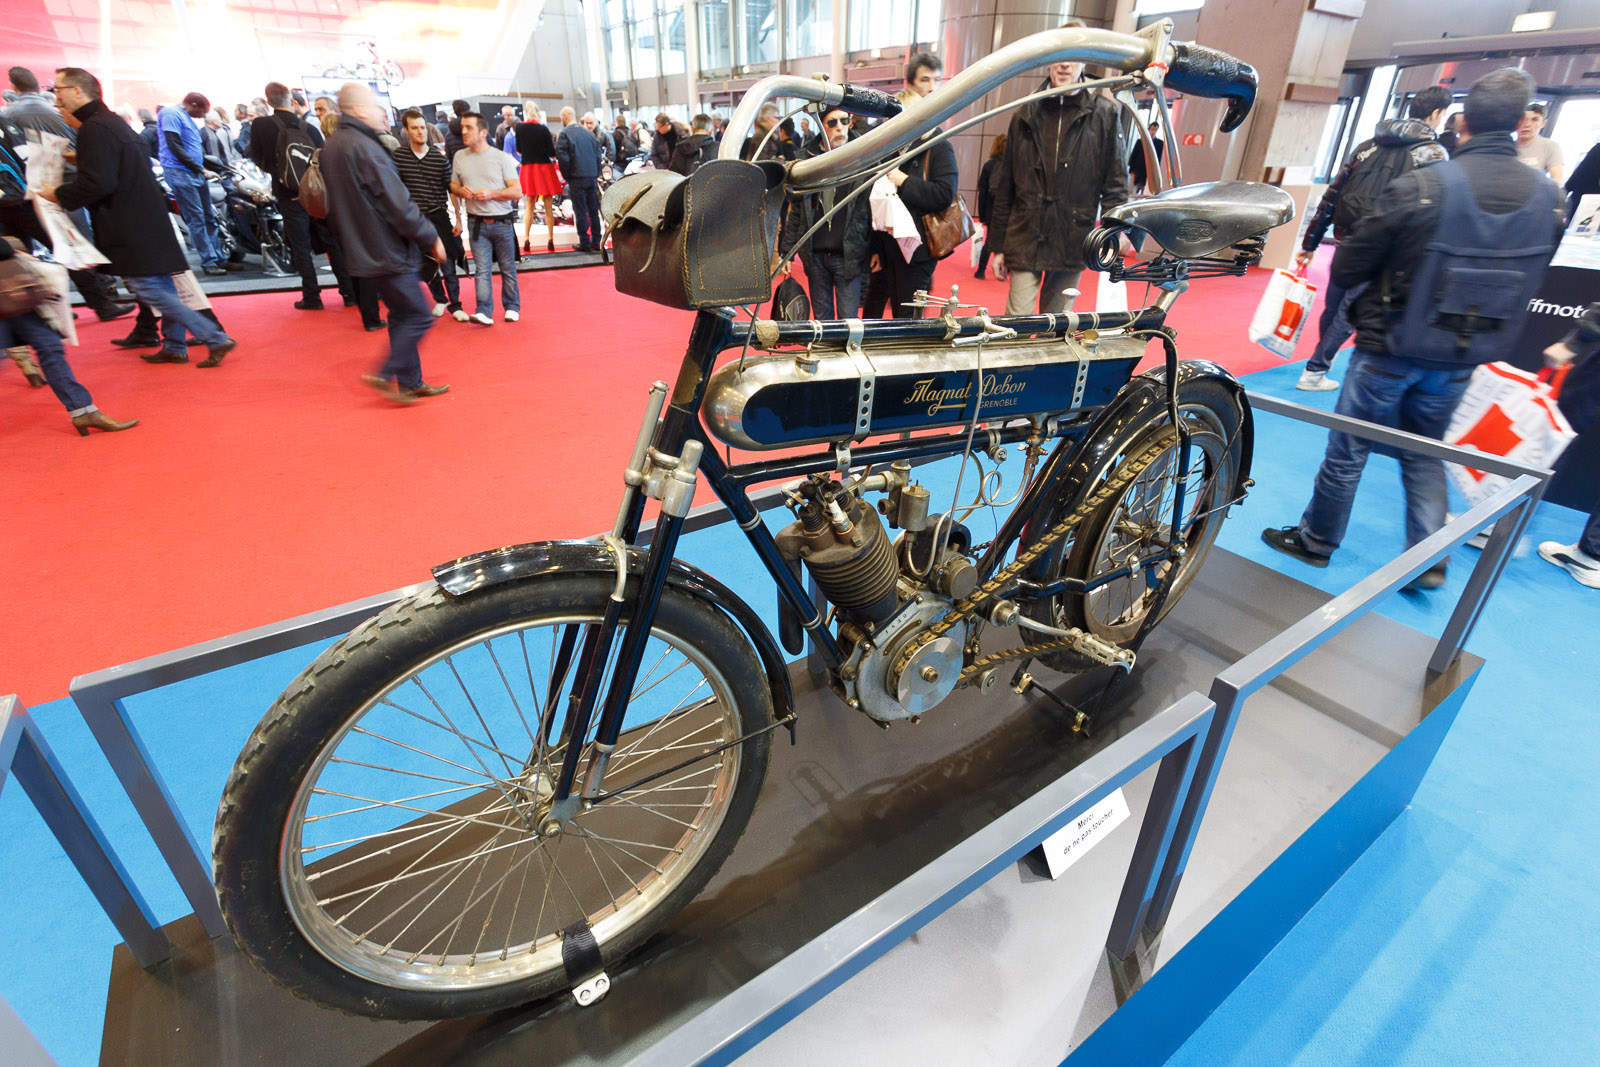 Century-old motorcycle